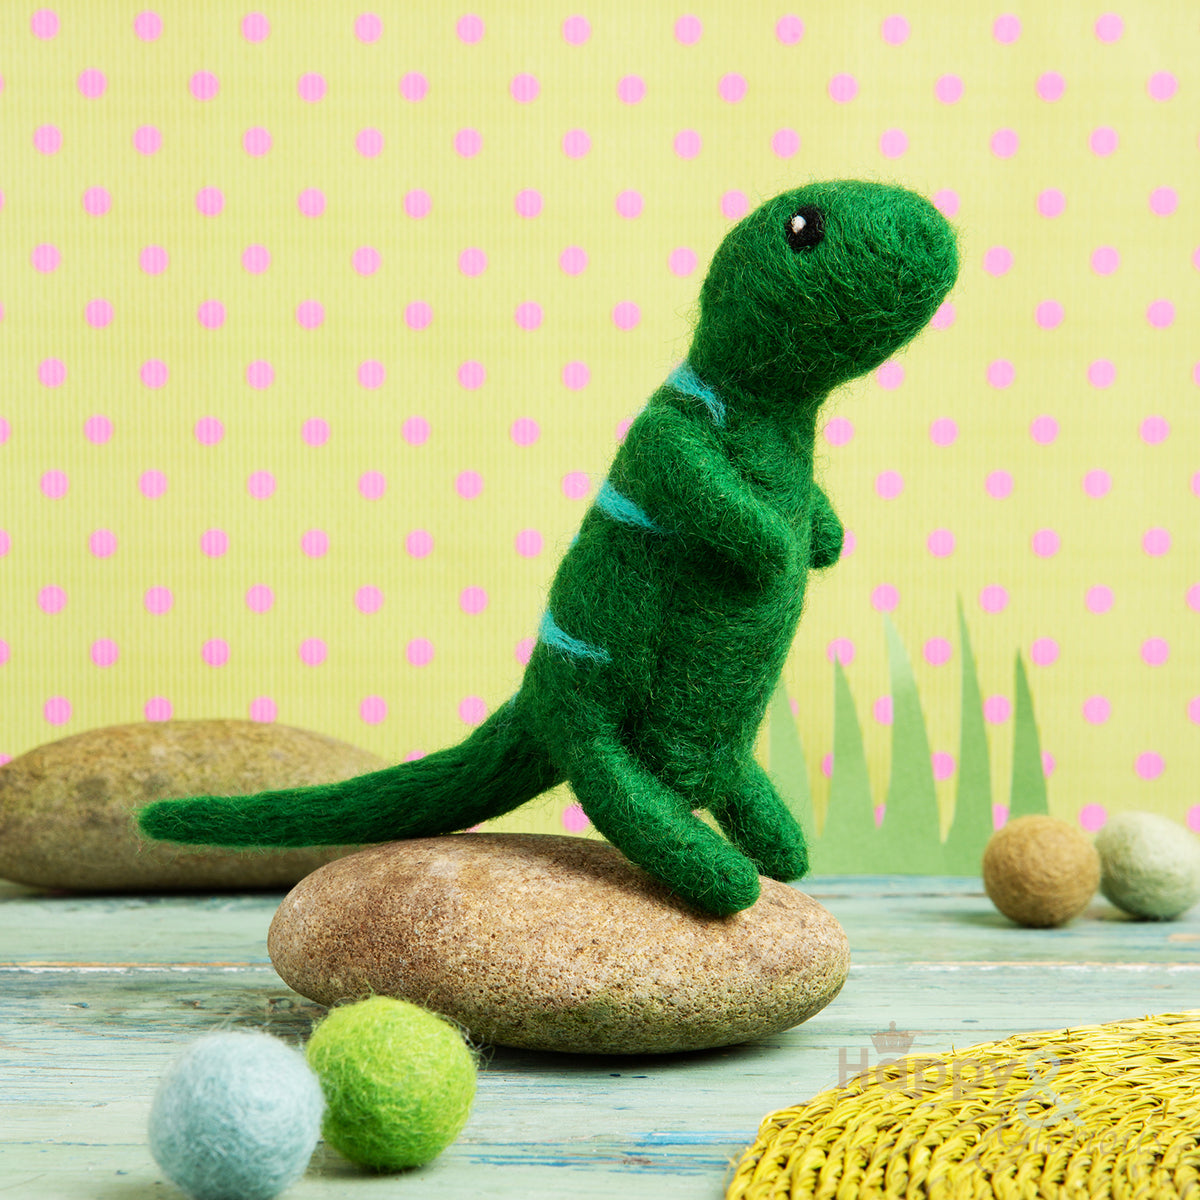 Mini t-rex needle felting craft kit